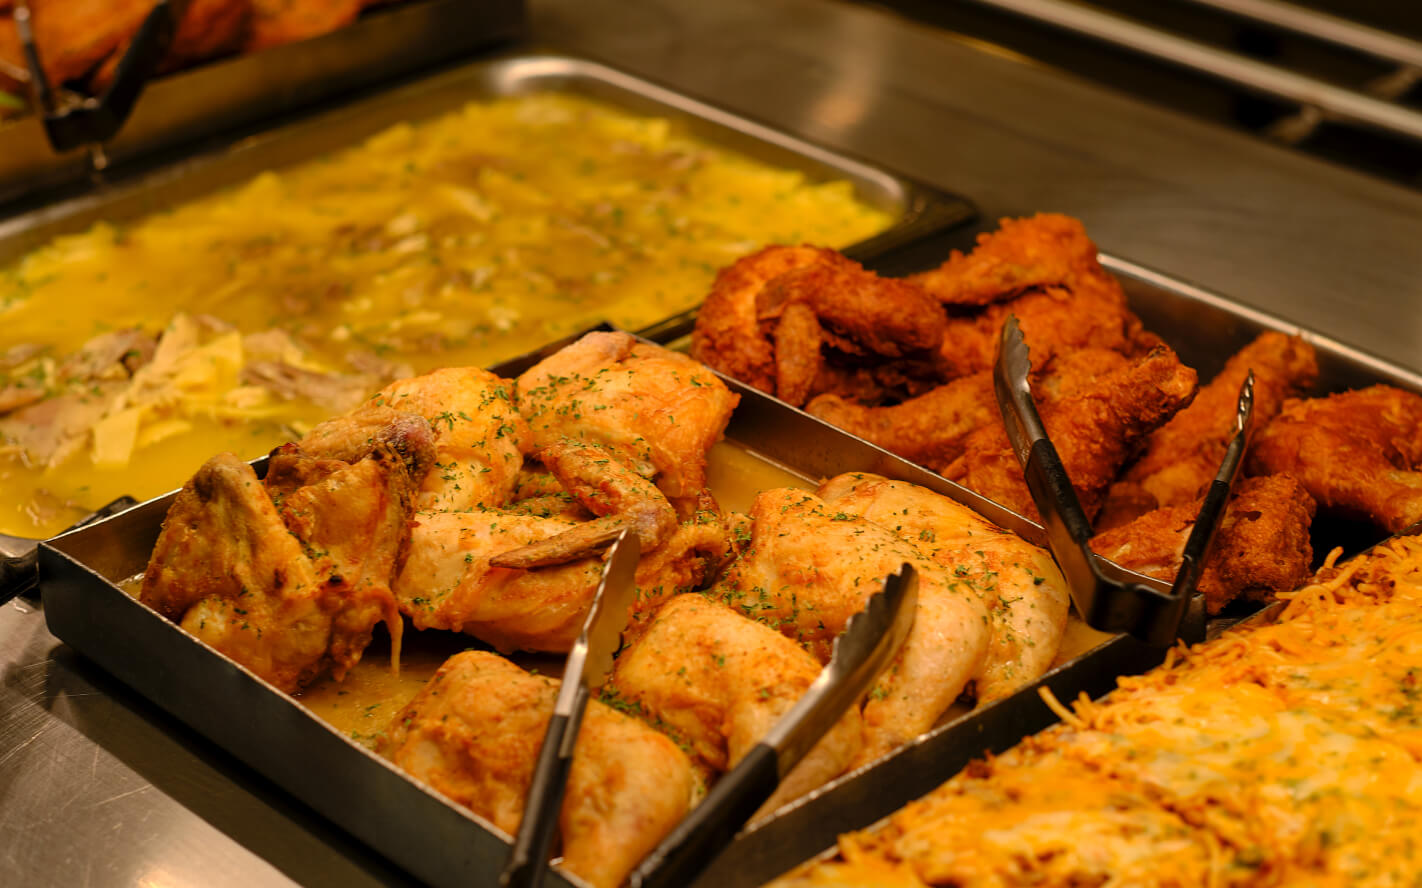 baked chicken, fried chicken, spaghetti and soup on food line